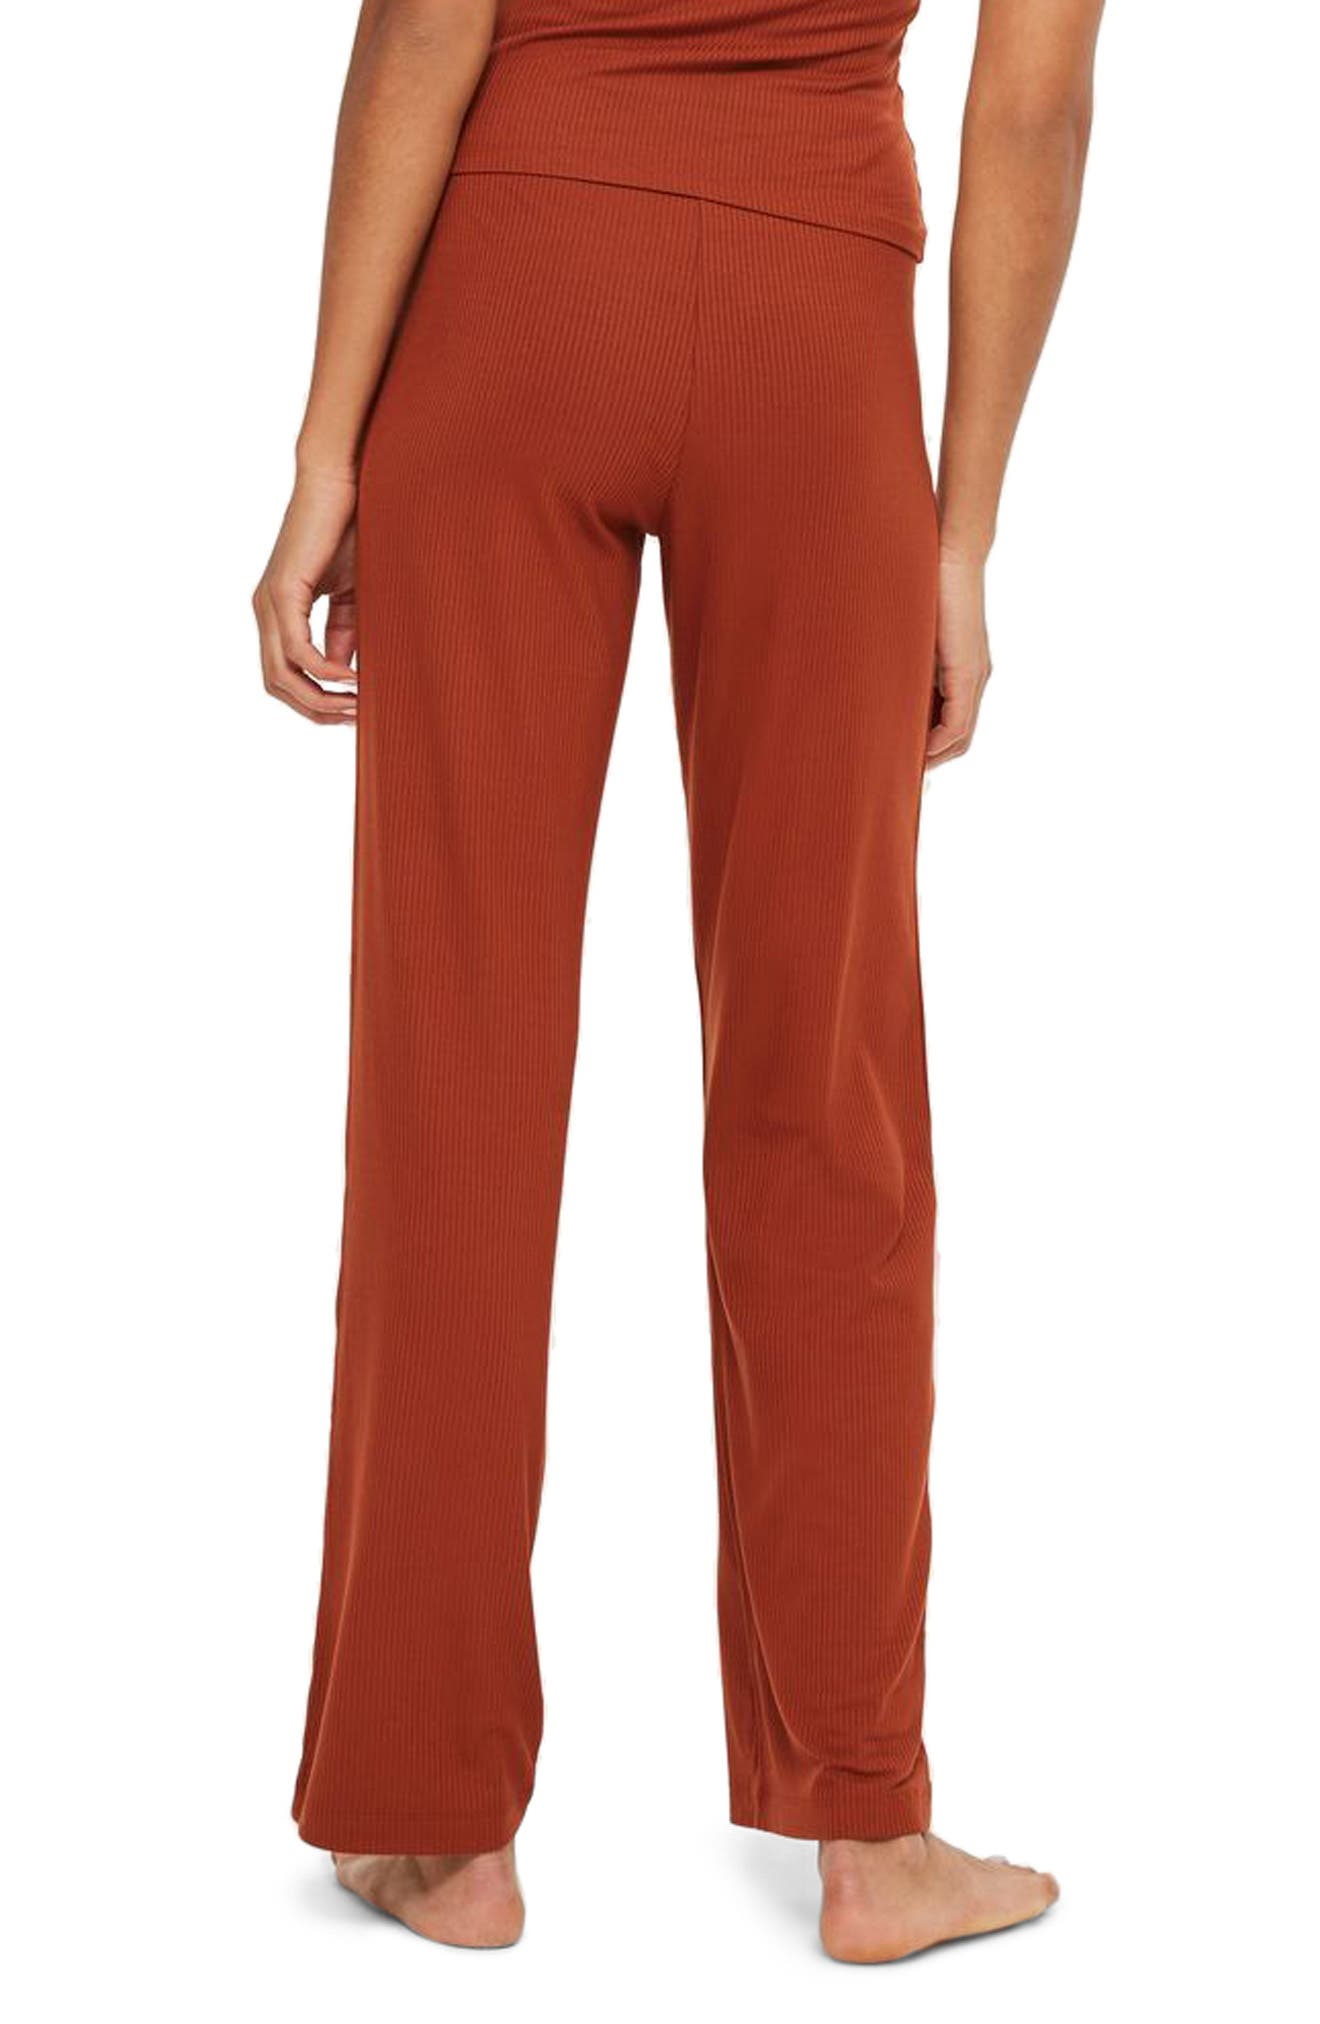 Ribbed Pajama Pants,                             Alternate thumbnail 2, color,                             220